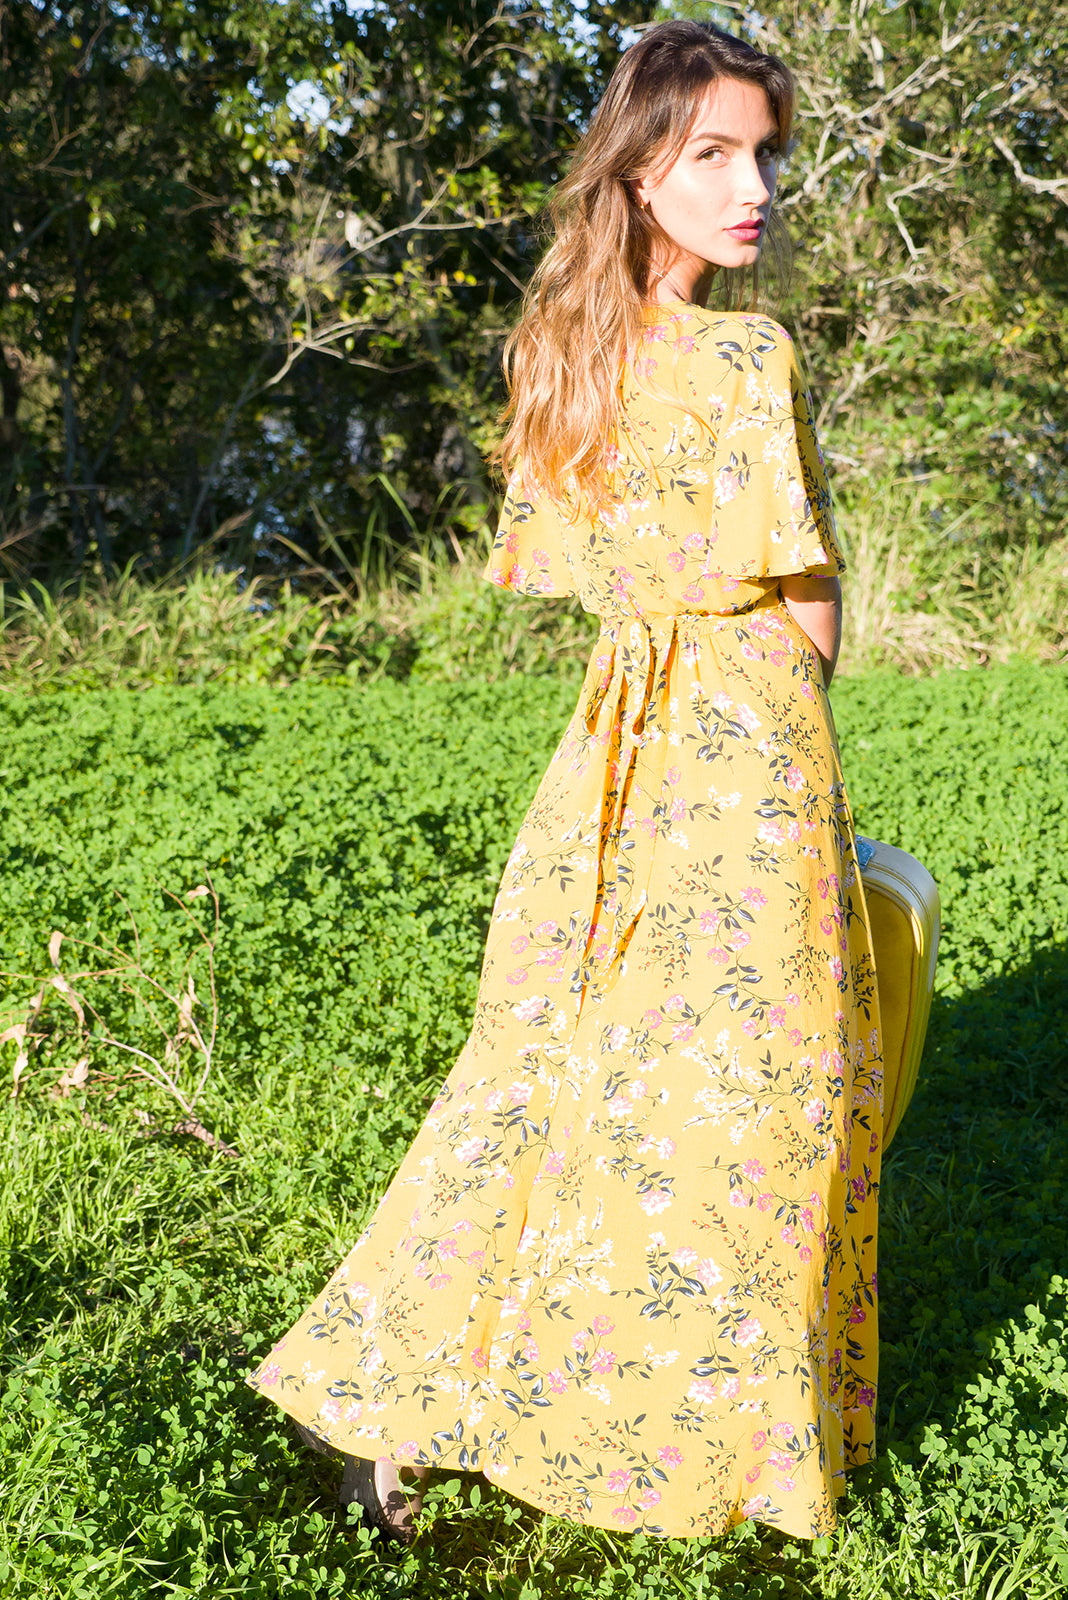 Cinnamon Garden Gold Maxi Wrap Dress, bohemian summer style, 100% rayon, wrap dress with tie at the waist, petal sleeve, soft bloused fit over the bust, scoop hem shorter at the front, crinkle crepe fabric with a soft drape, gold base with a medium red, white and forest green floral print.